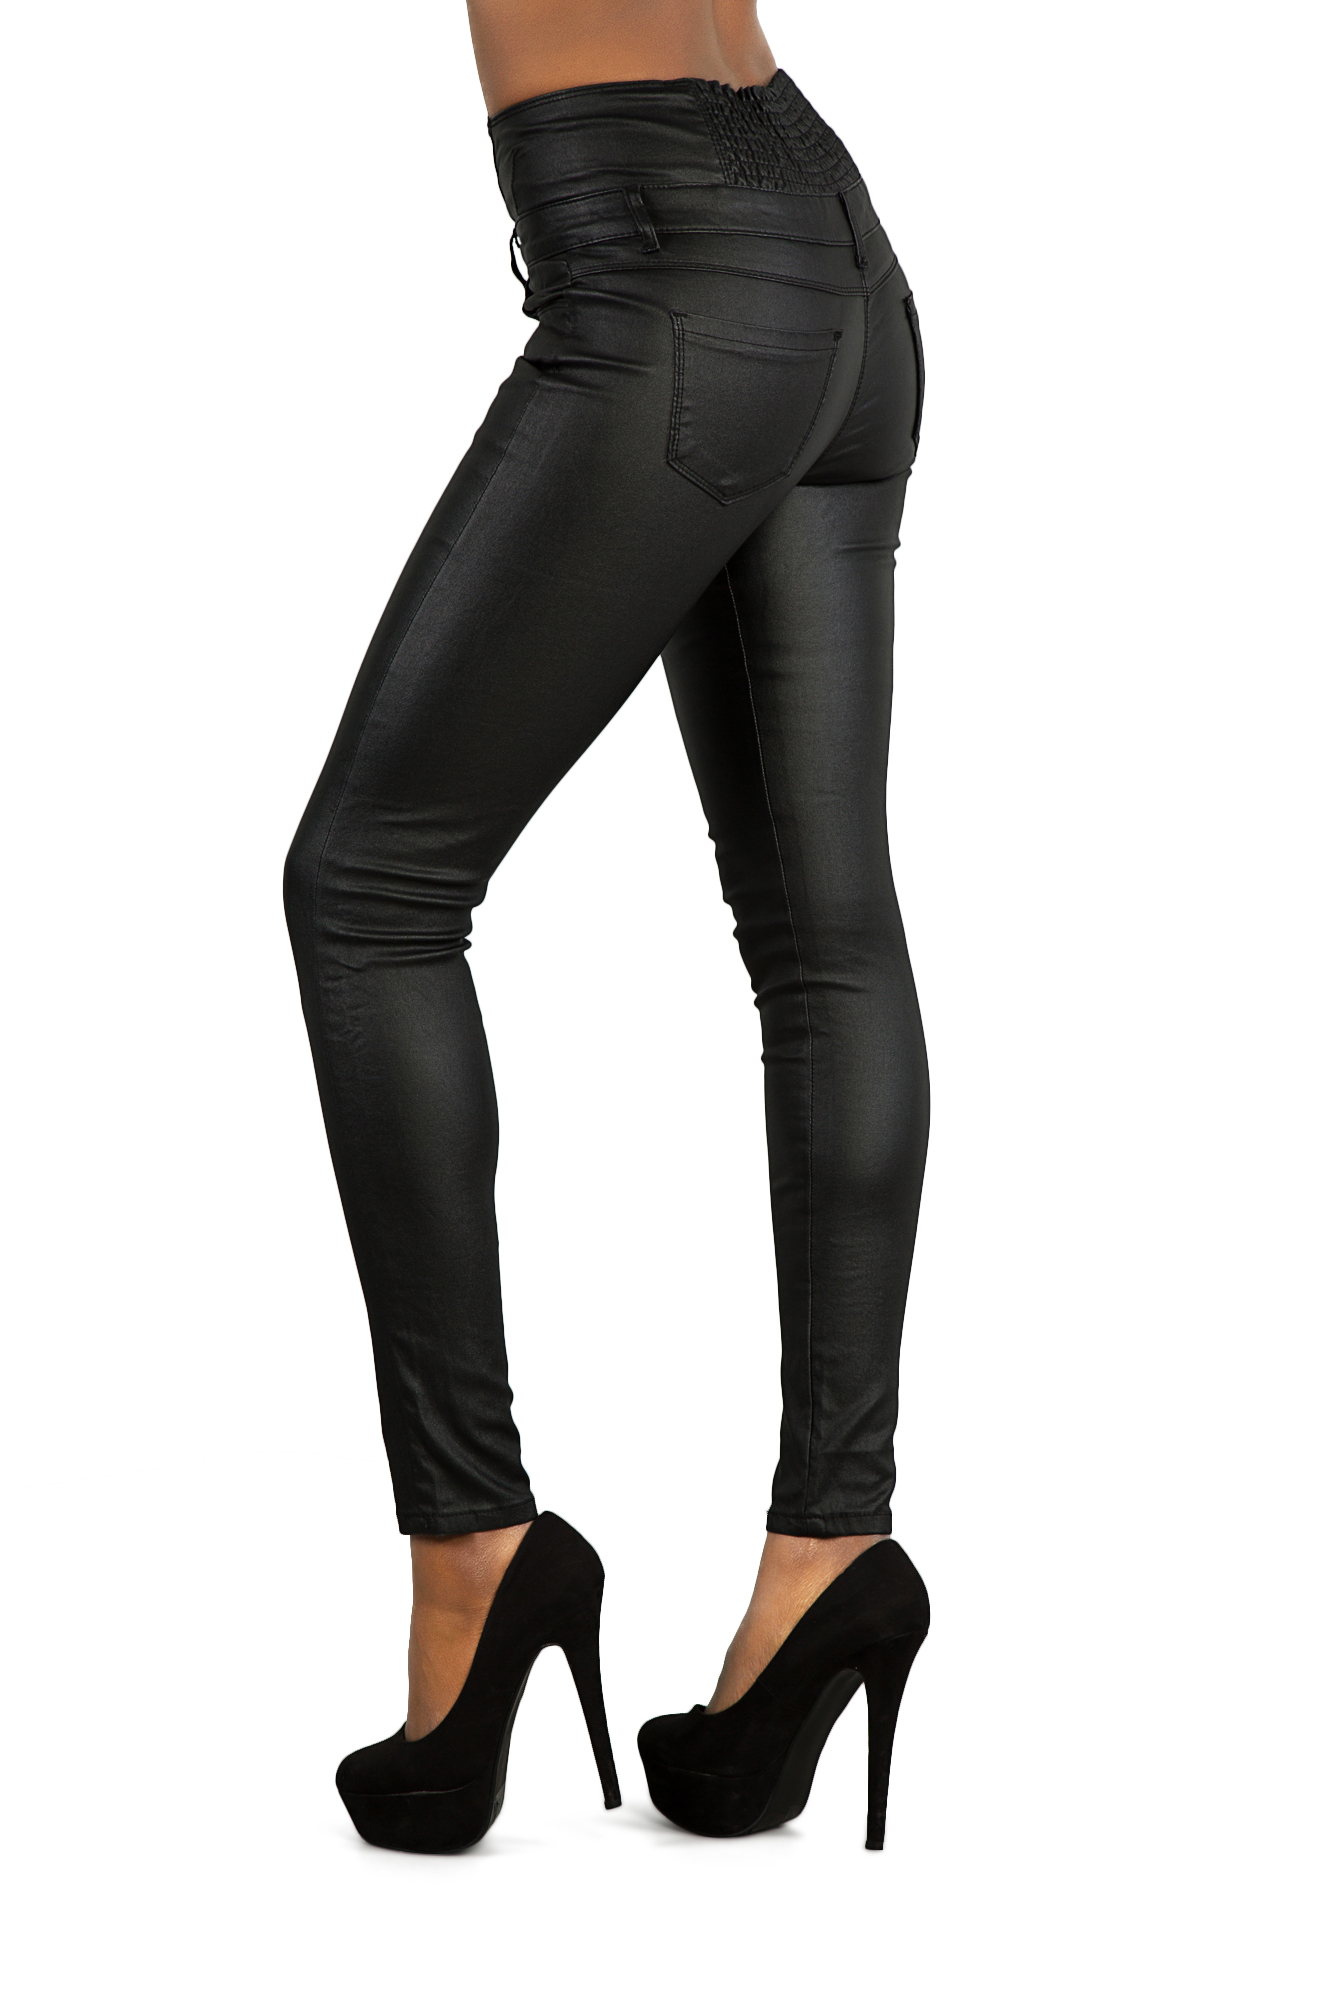 womens high waisted black leather look jeans slim fit. Black Bedroom Furniture Sets. Home Design Ideas